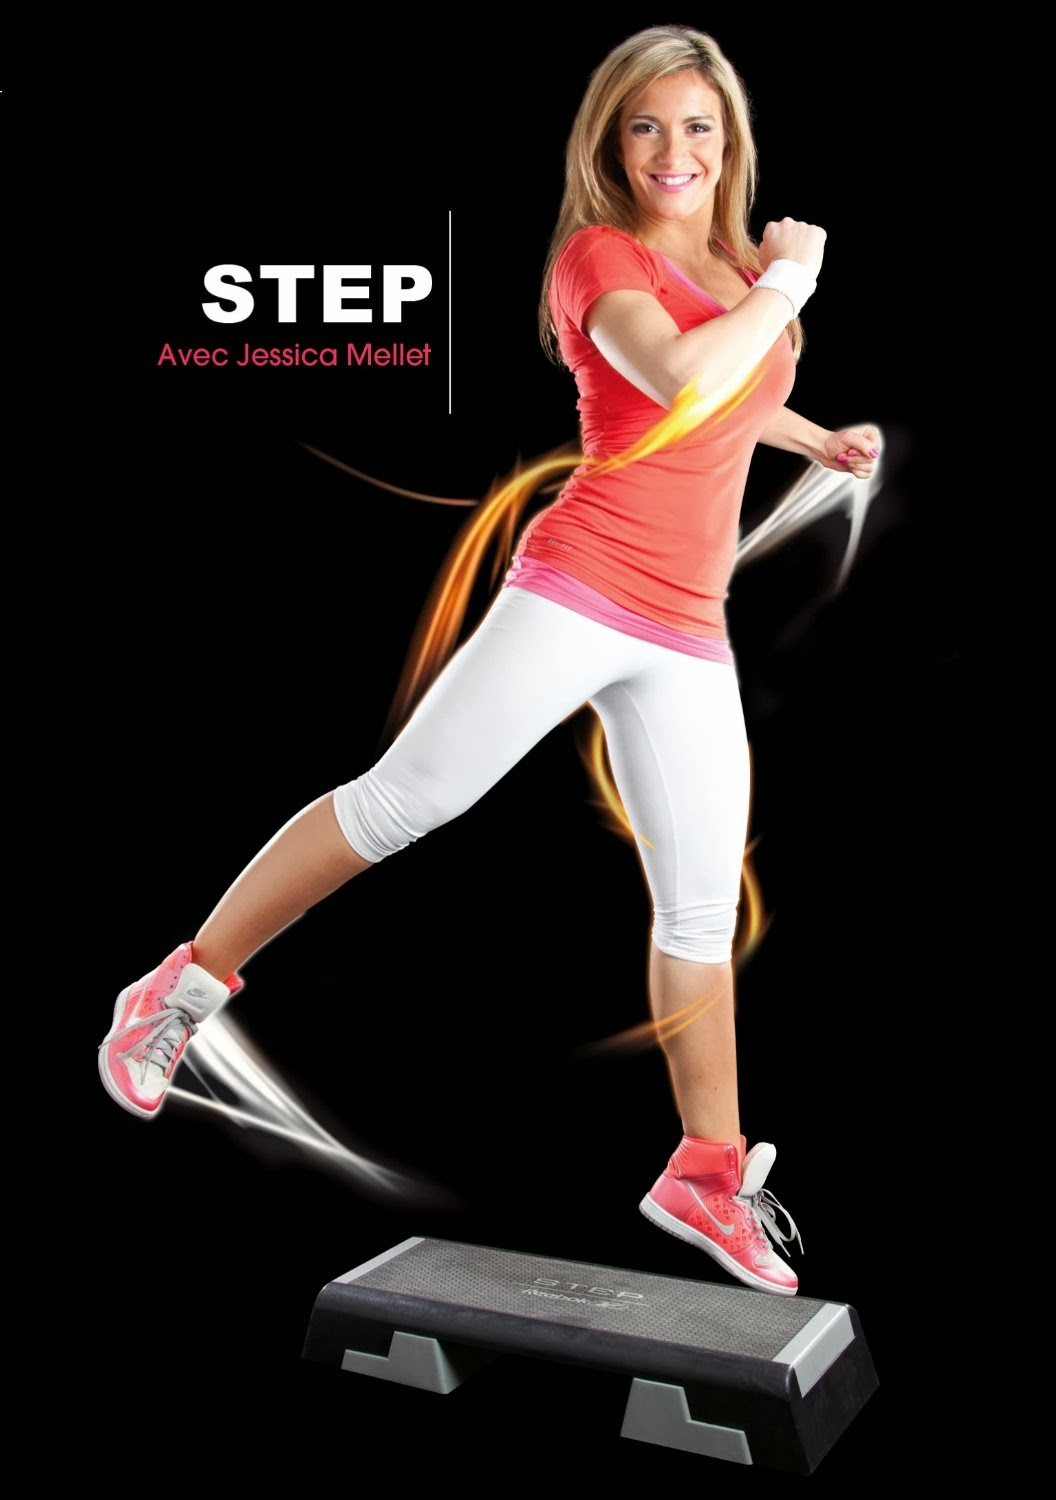 step fitness vo telechargement gratuit dvd fitness. Black Bedroom Furniture Sets. Home Design Ideas